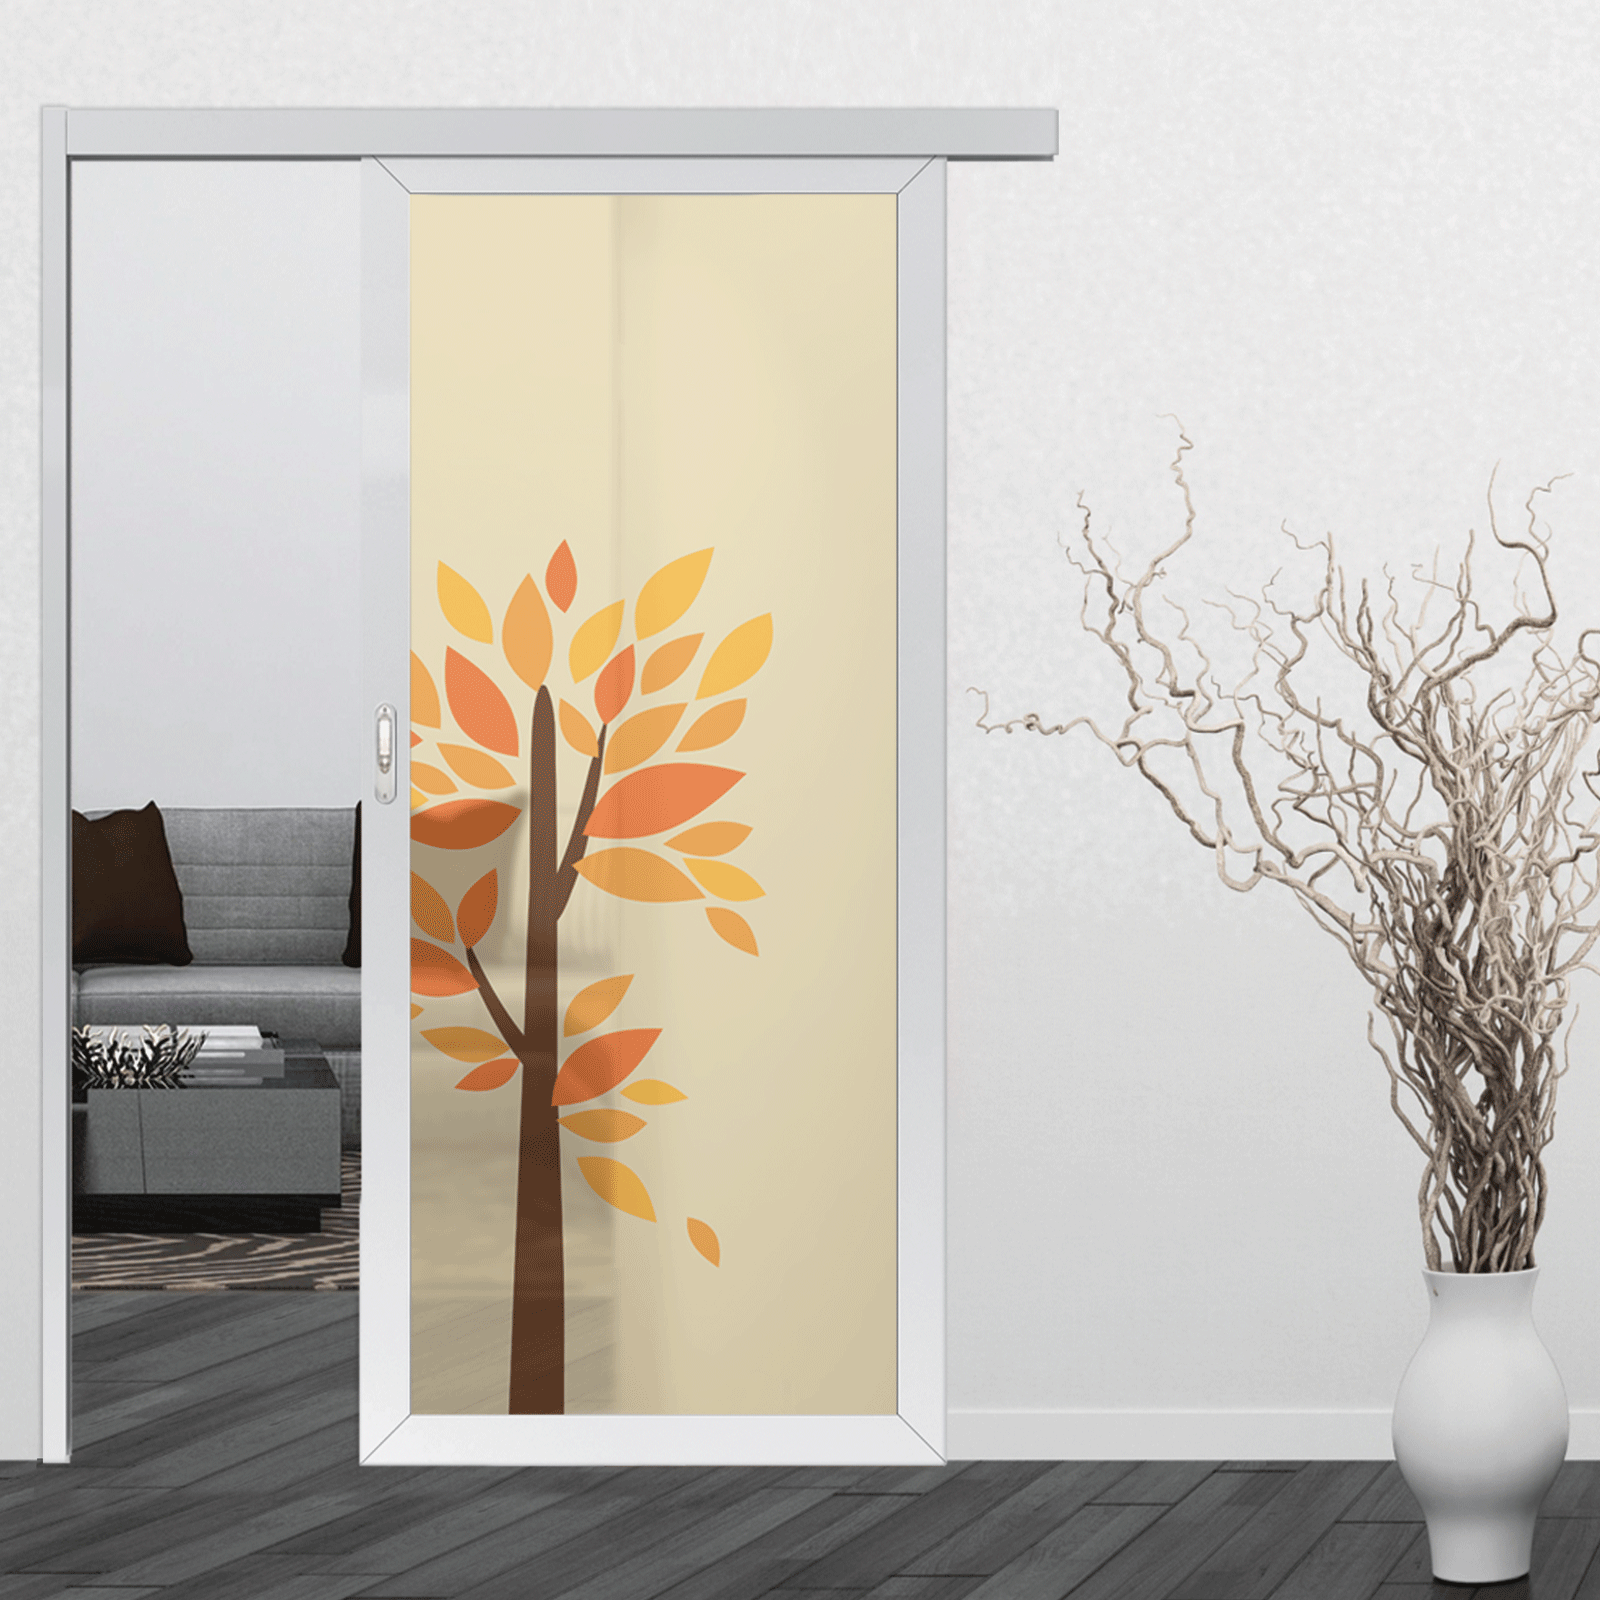 Our Alu door is the modern aluminium door.It gives you contemporary feeling and taste of the modern lifestyle design for your ideal home. & Alu Door